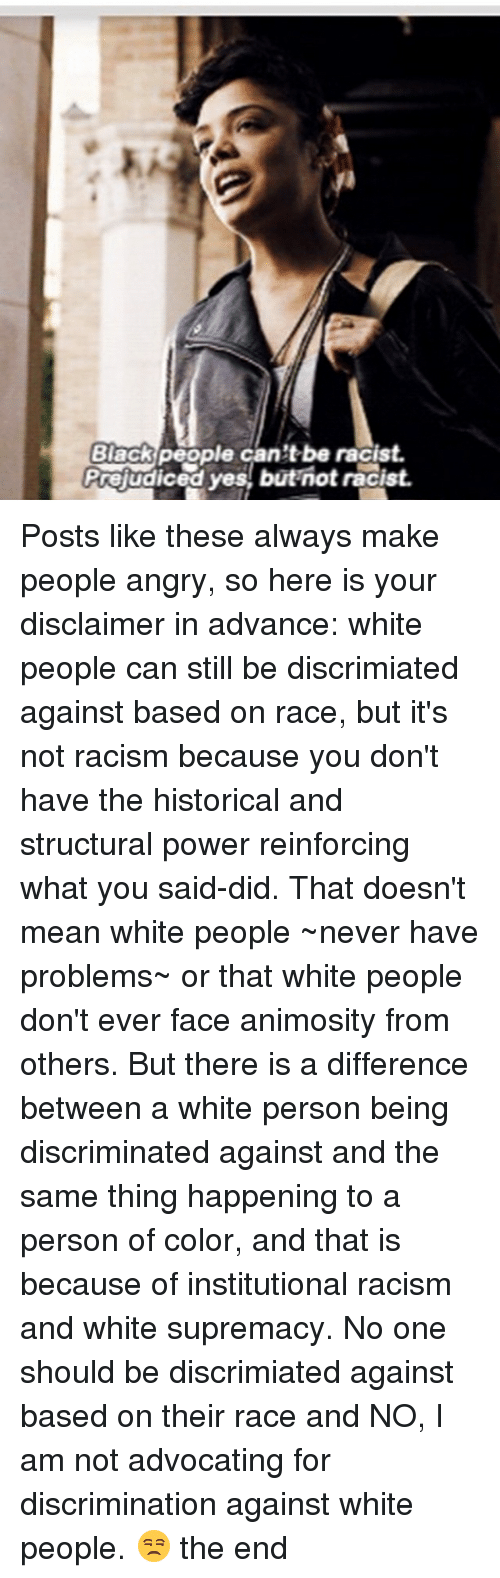 Memes, Racism, and White People: Black  people can'tbe racist.  Prejudiced yes, but not racist. Posts like these always make people angry, so here is your disclaimer in advance: white people can still be discrimiated against based on race, but it's not racism because you don't have the historical and structural power reinforcing what you said-did. That doesn't mean white people ~never have problems~ or that white people don't ever face animosity from others. But there is a difference between a white person being discriminated against and the same thing happening to a person of color, and that is because of institutional racism and white supremacy. No one should be discrimiated against based on their race and NO, I am not advocating for discrimination against white people. 😒 the end